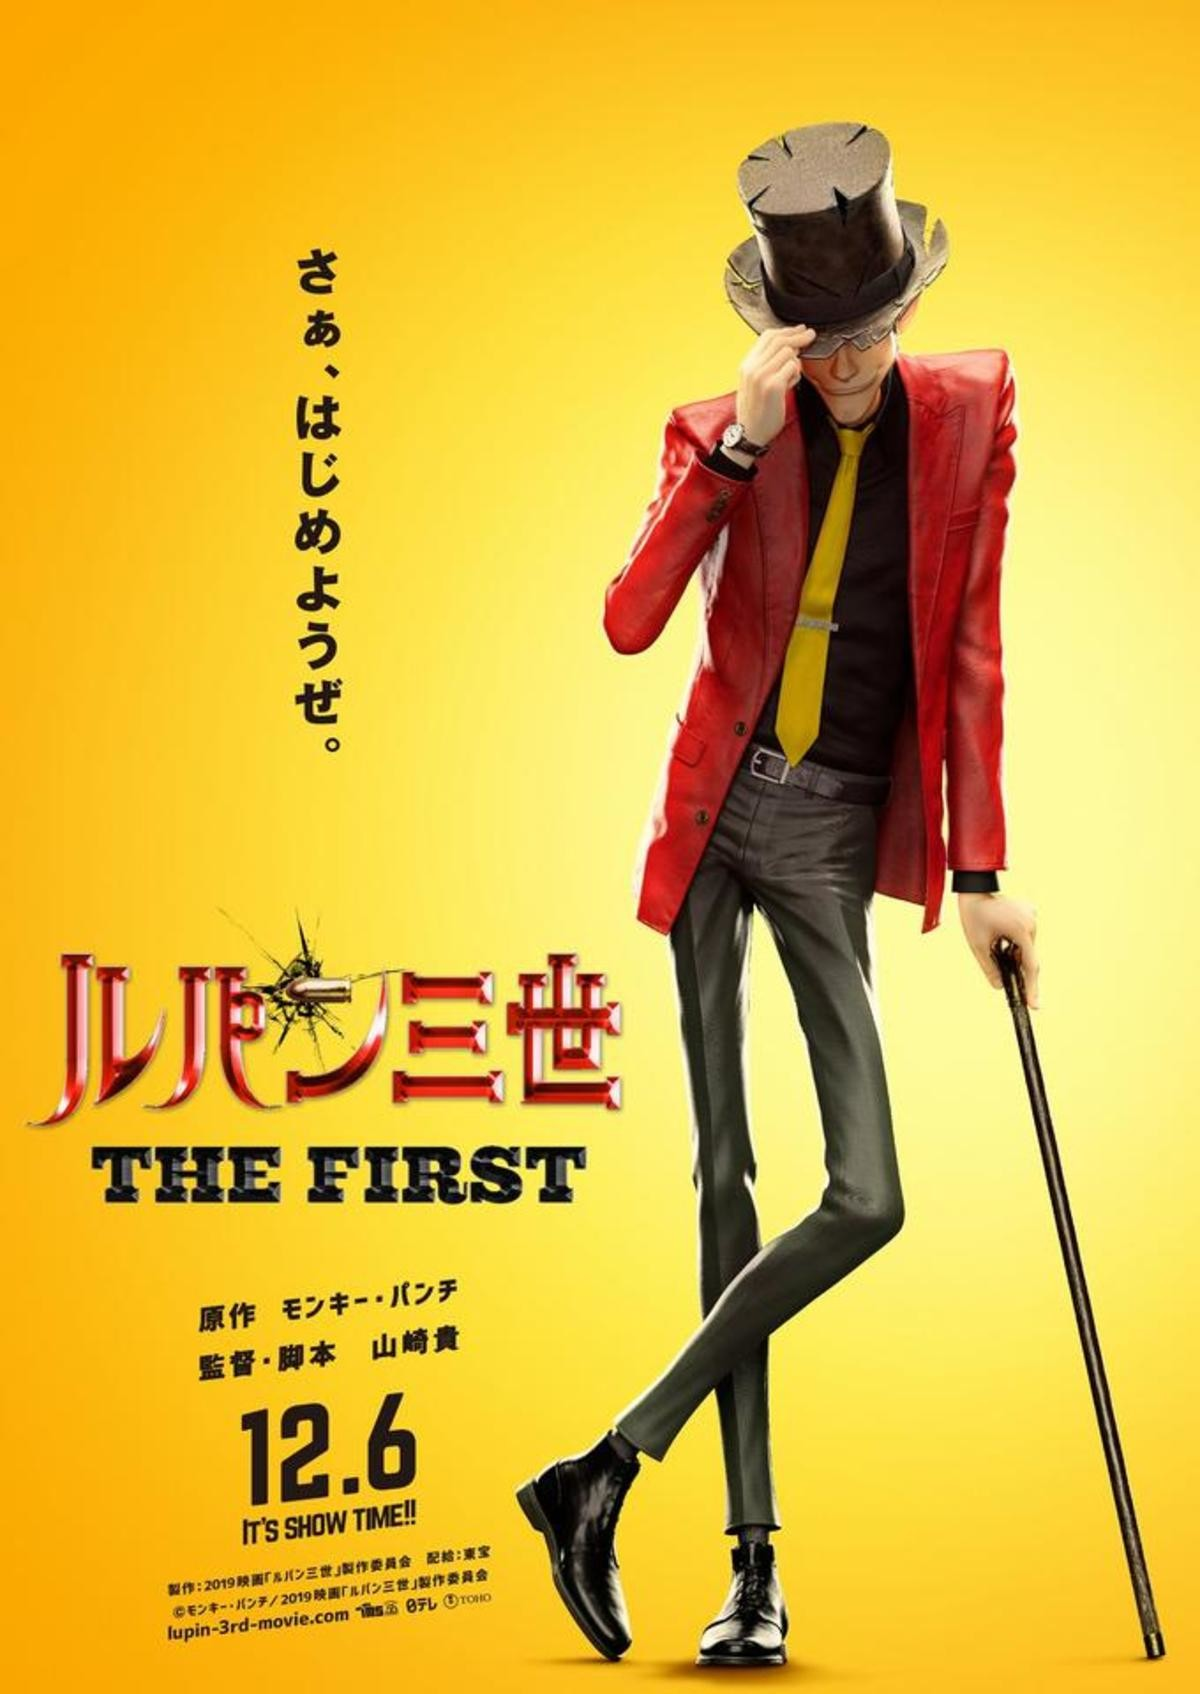 Lupin%20the%20third%20the%20first%20key%20visual_9c545d_7183703